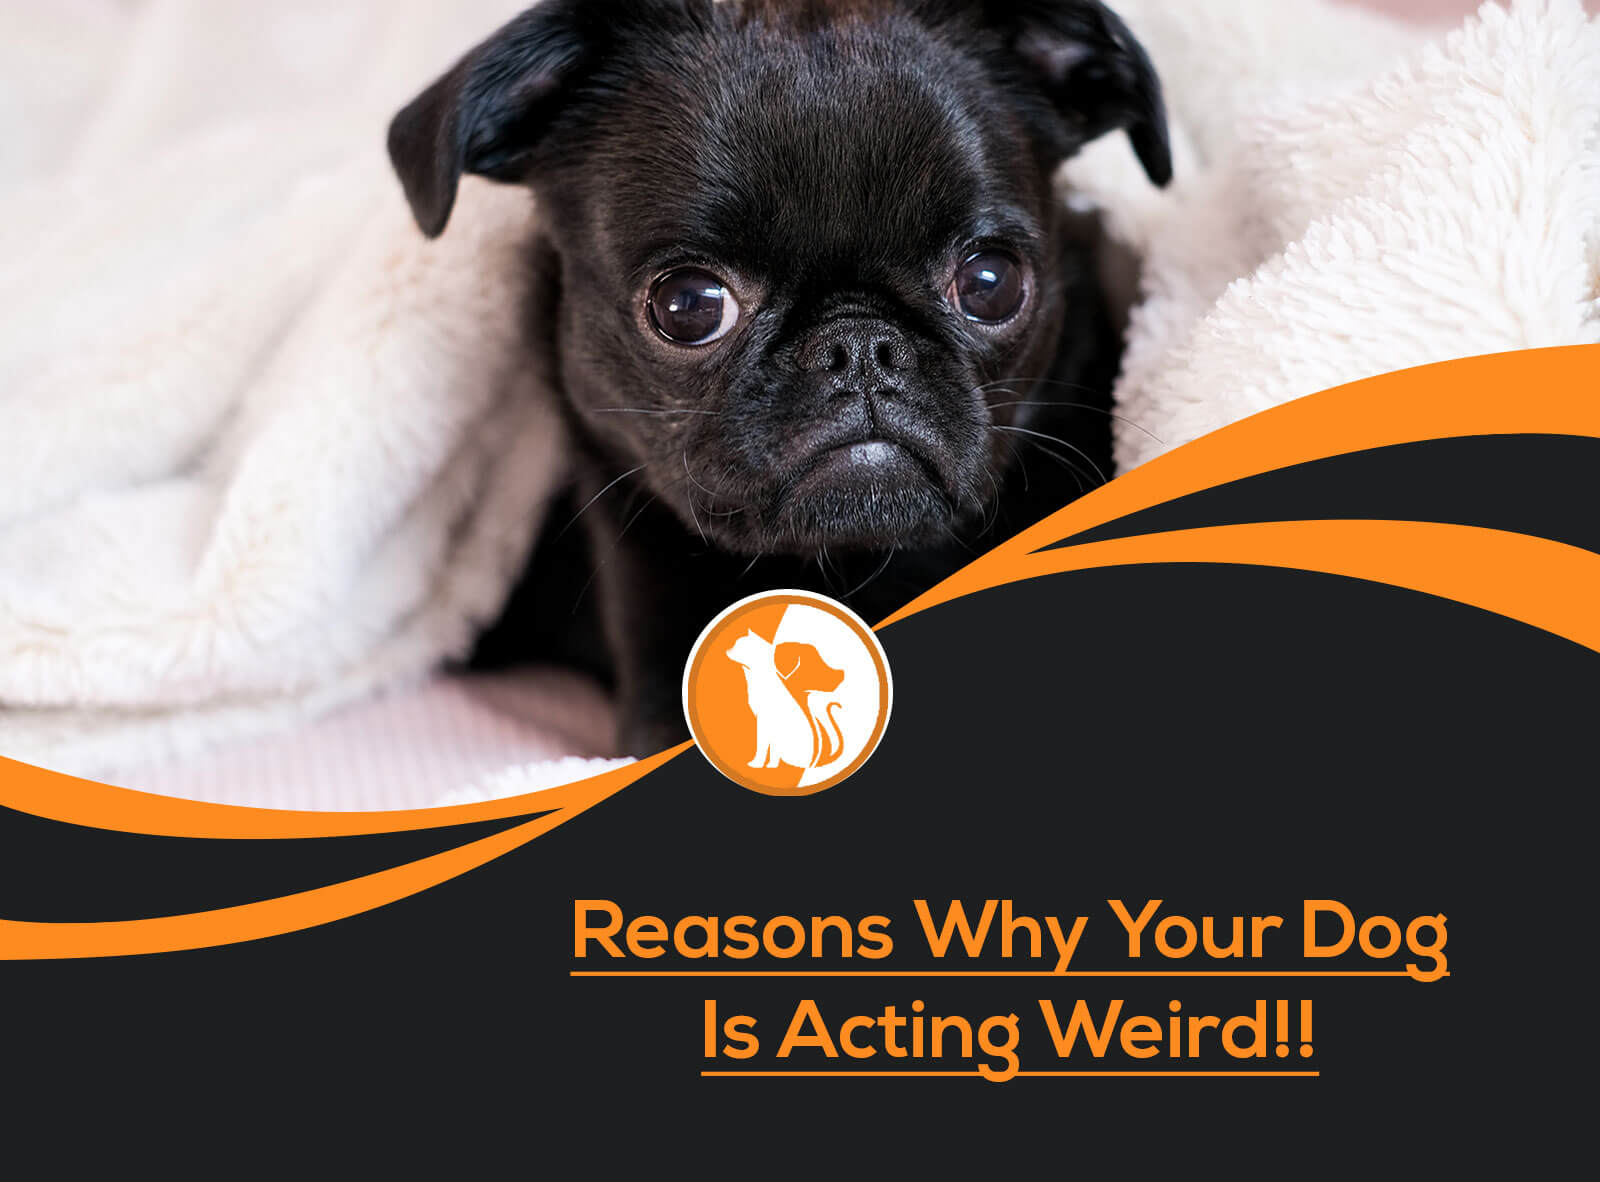 Reasons Why Your Dog Is Acting Weird